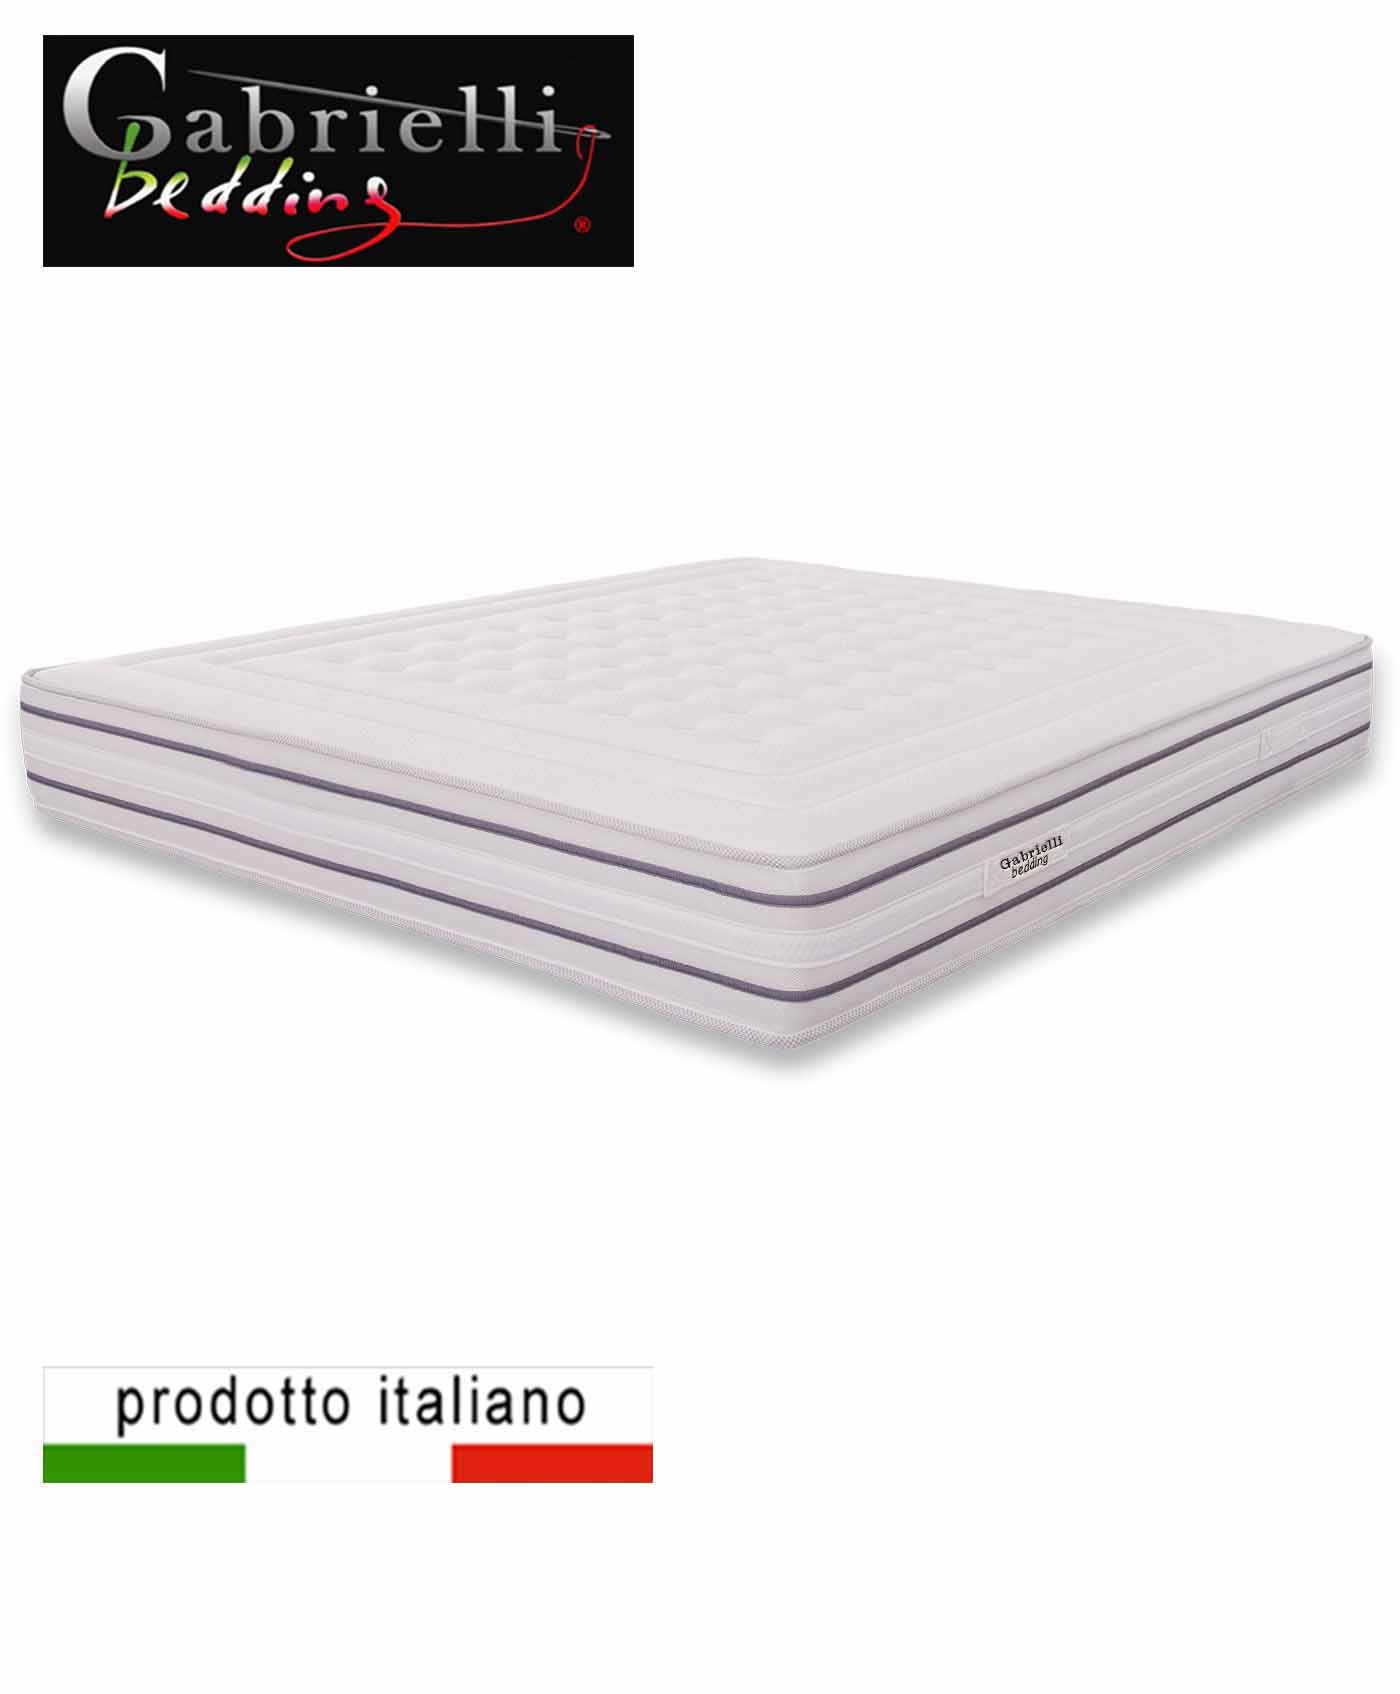 Materasso A Molle O Memory Foam.800 Pocket Coil Mattress With Memory Layer Dotti Gabrielli Bedding